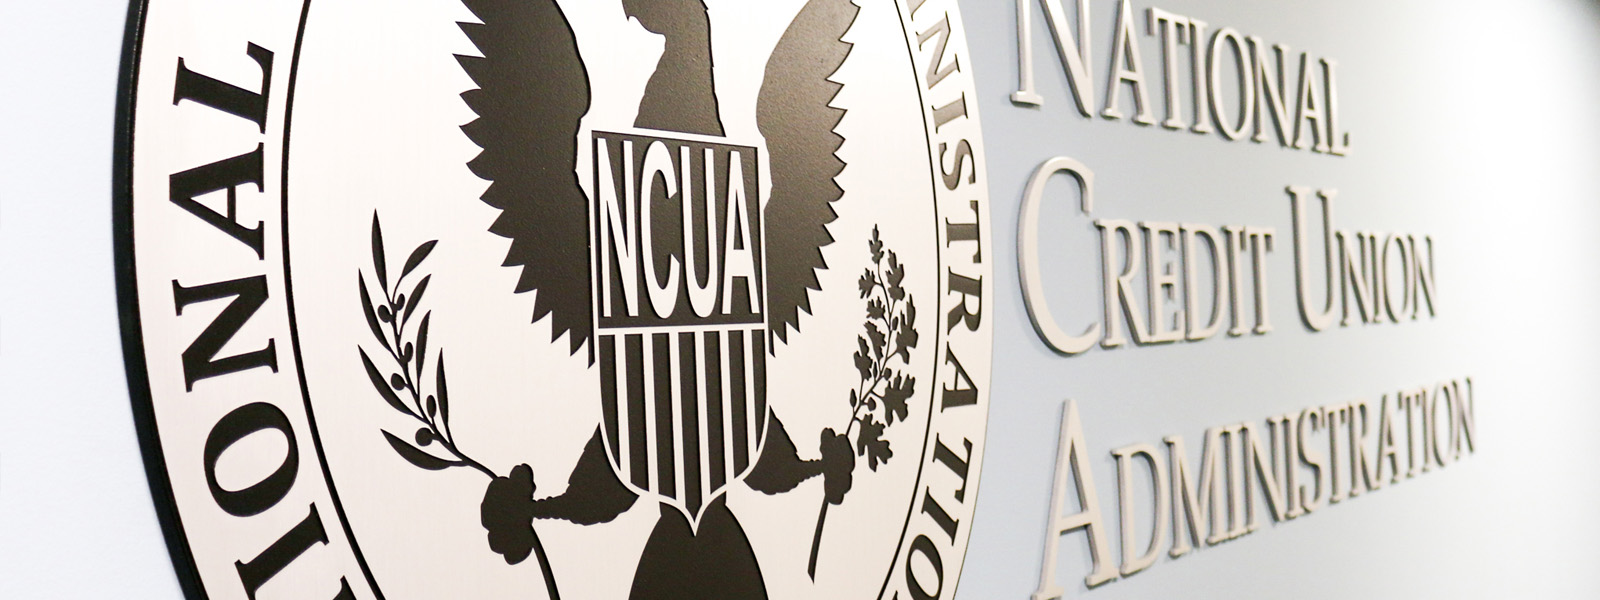 Image of the NCUA seal on a wall